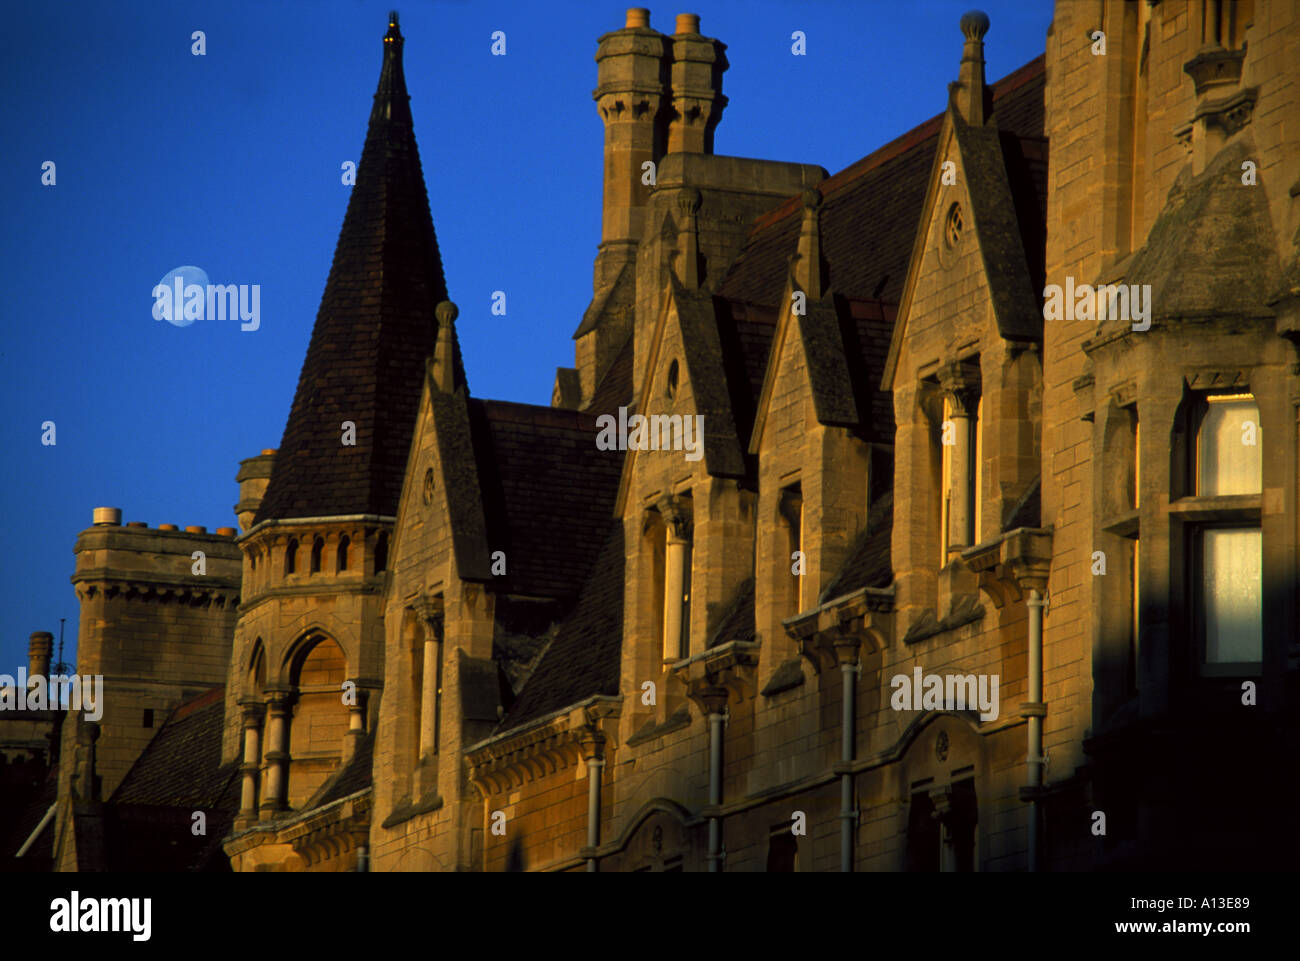 Balliol College Oxford by moonlight - Stock Image